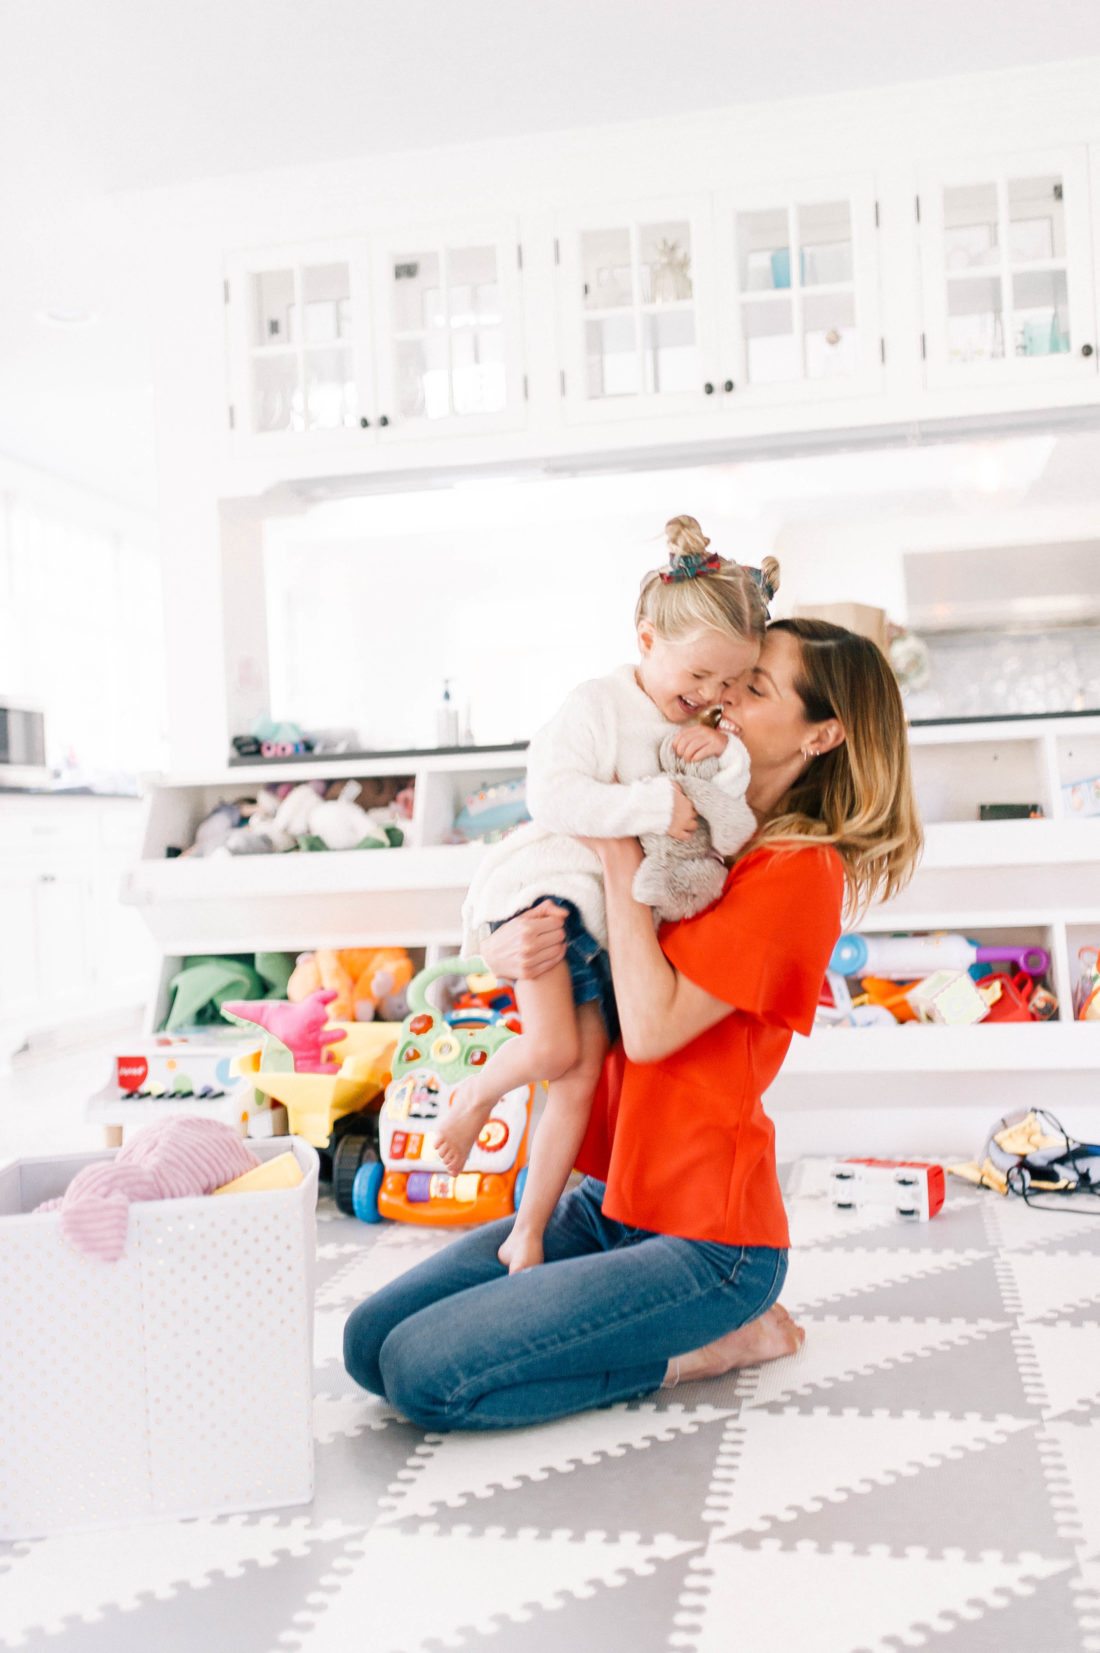 Eva Amurri Martino hugs and tickles three year old daughter marlowe in the family room of their Connecticut home